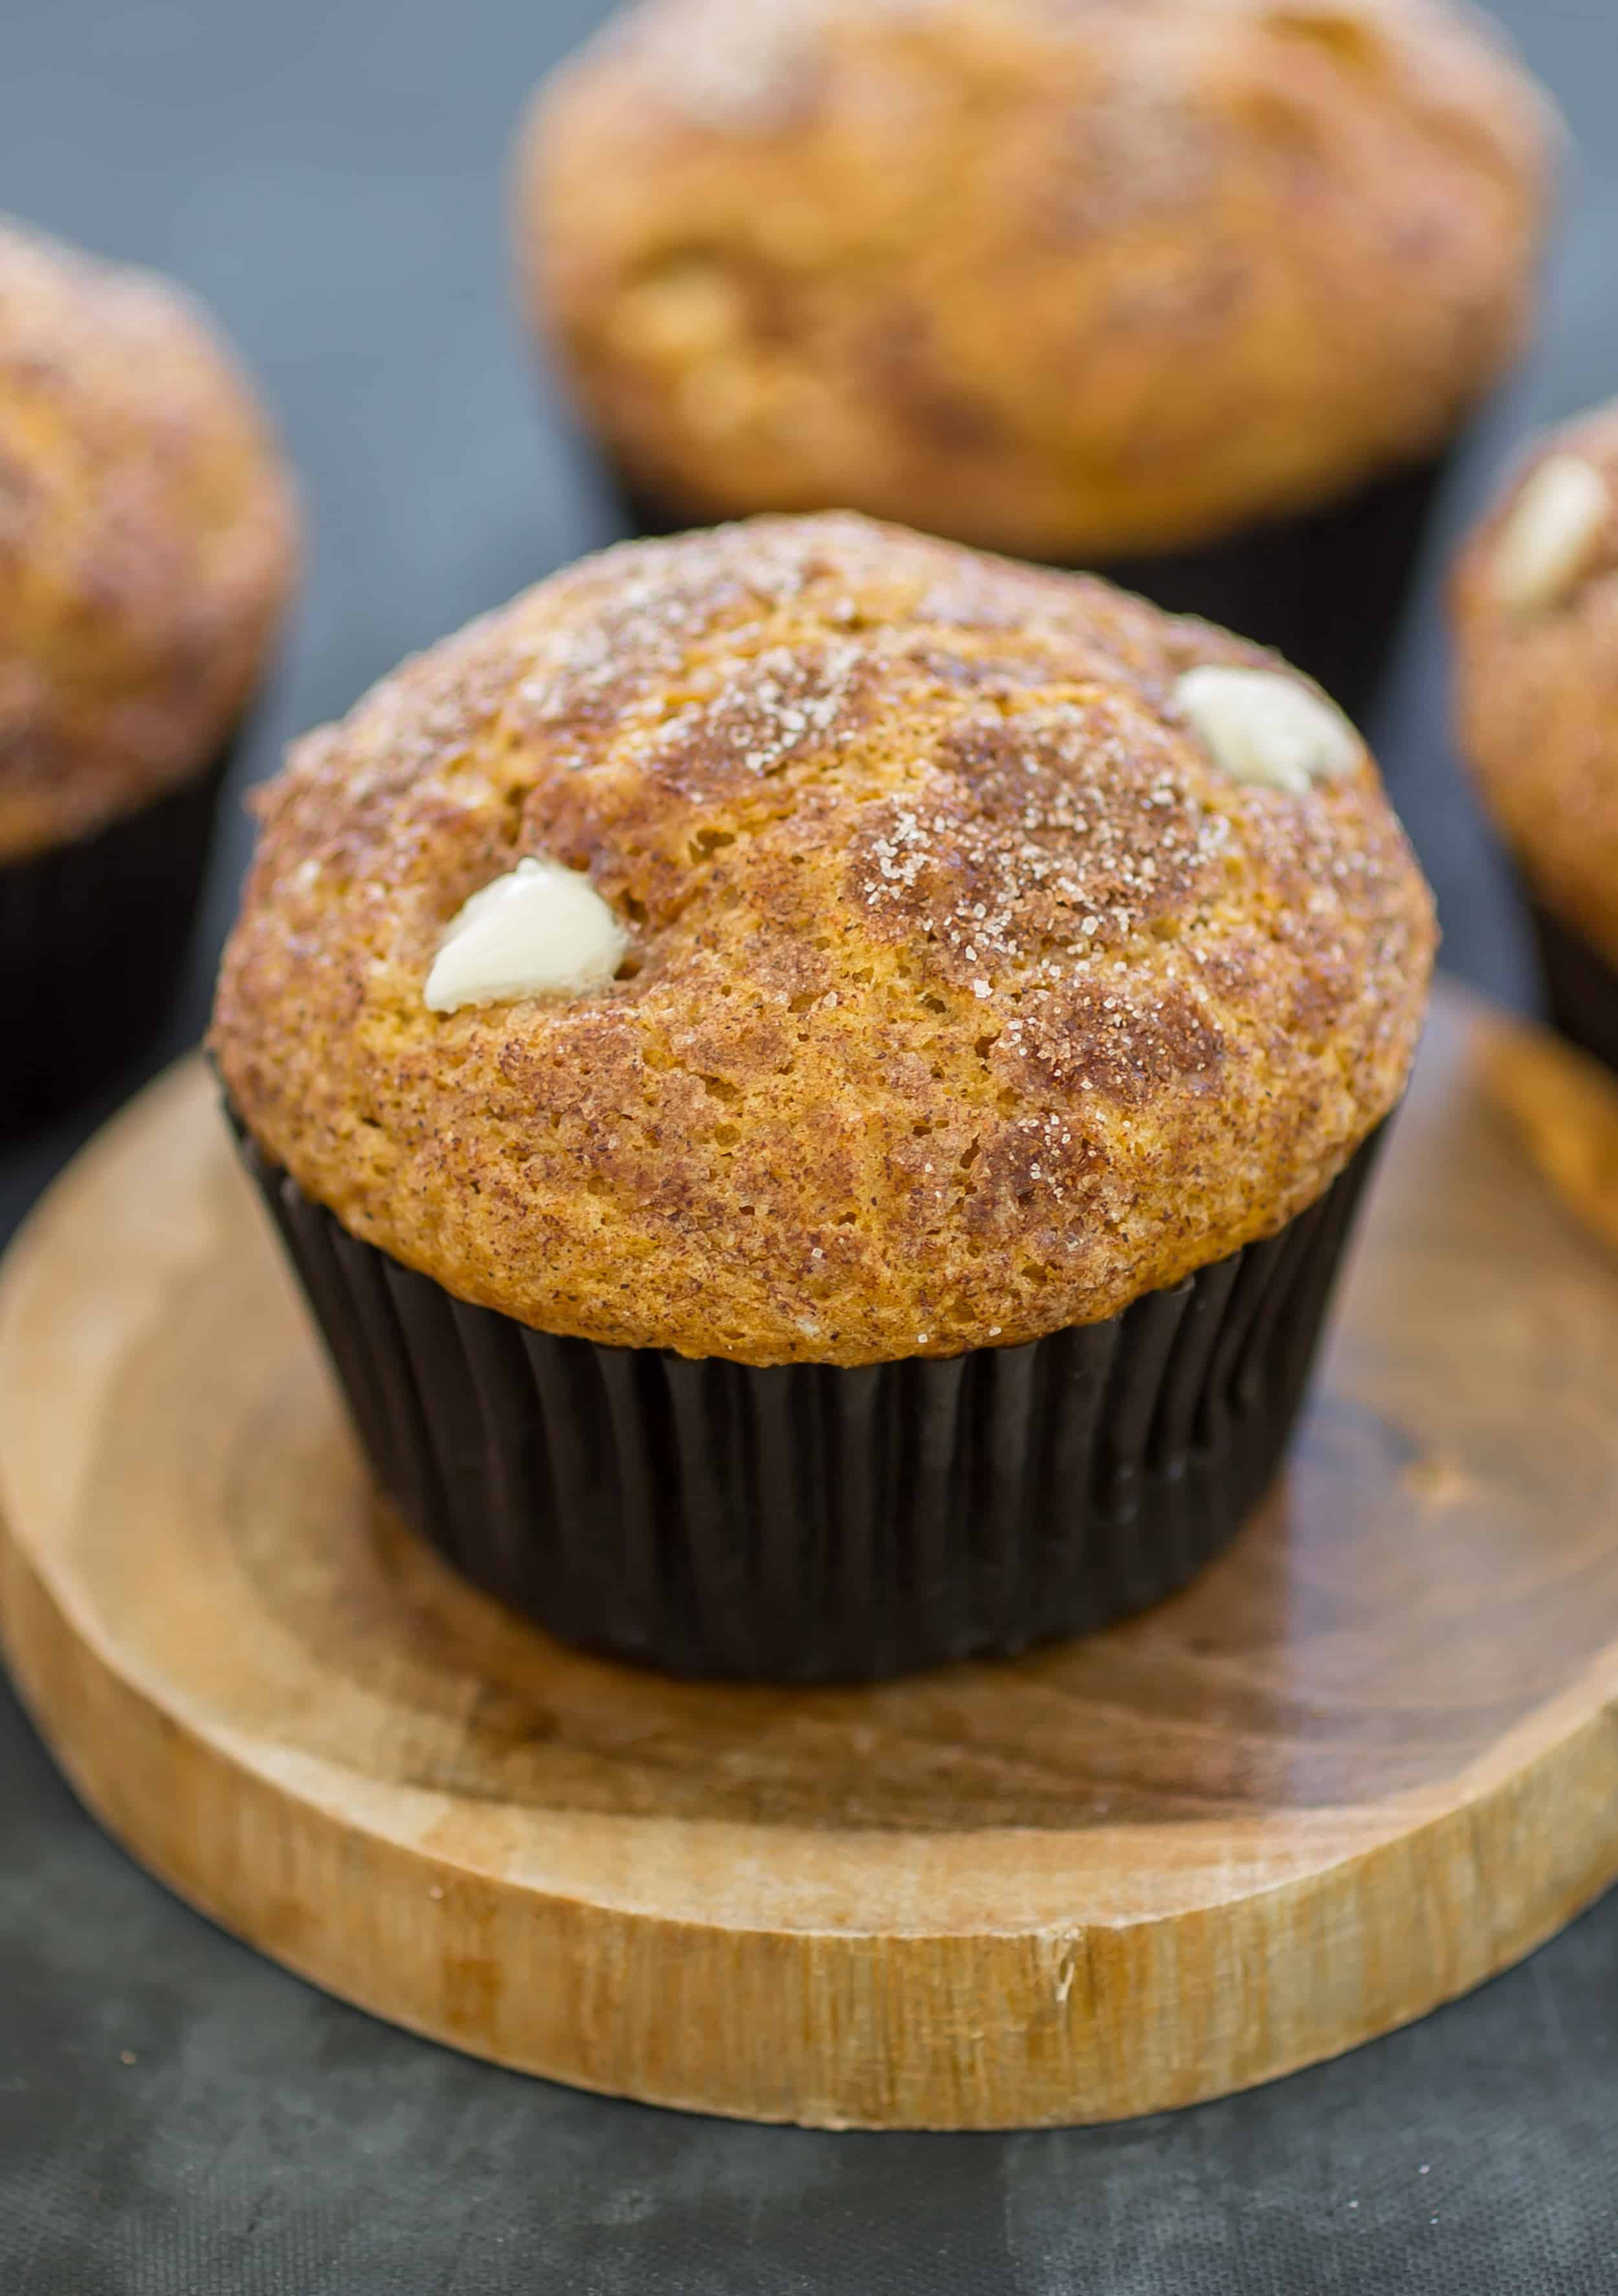 These White Chocolate Chip Pumpkin Muffins are the perfect tasty treat for the cooler weather!